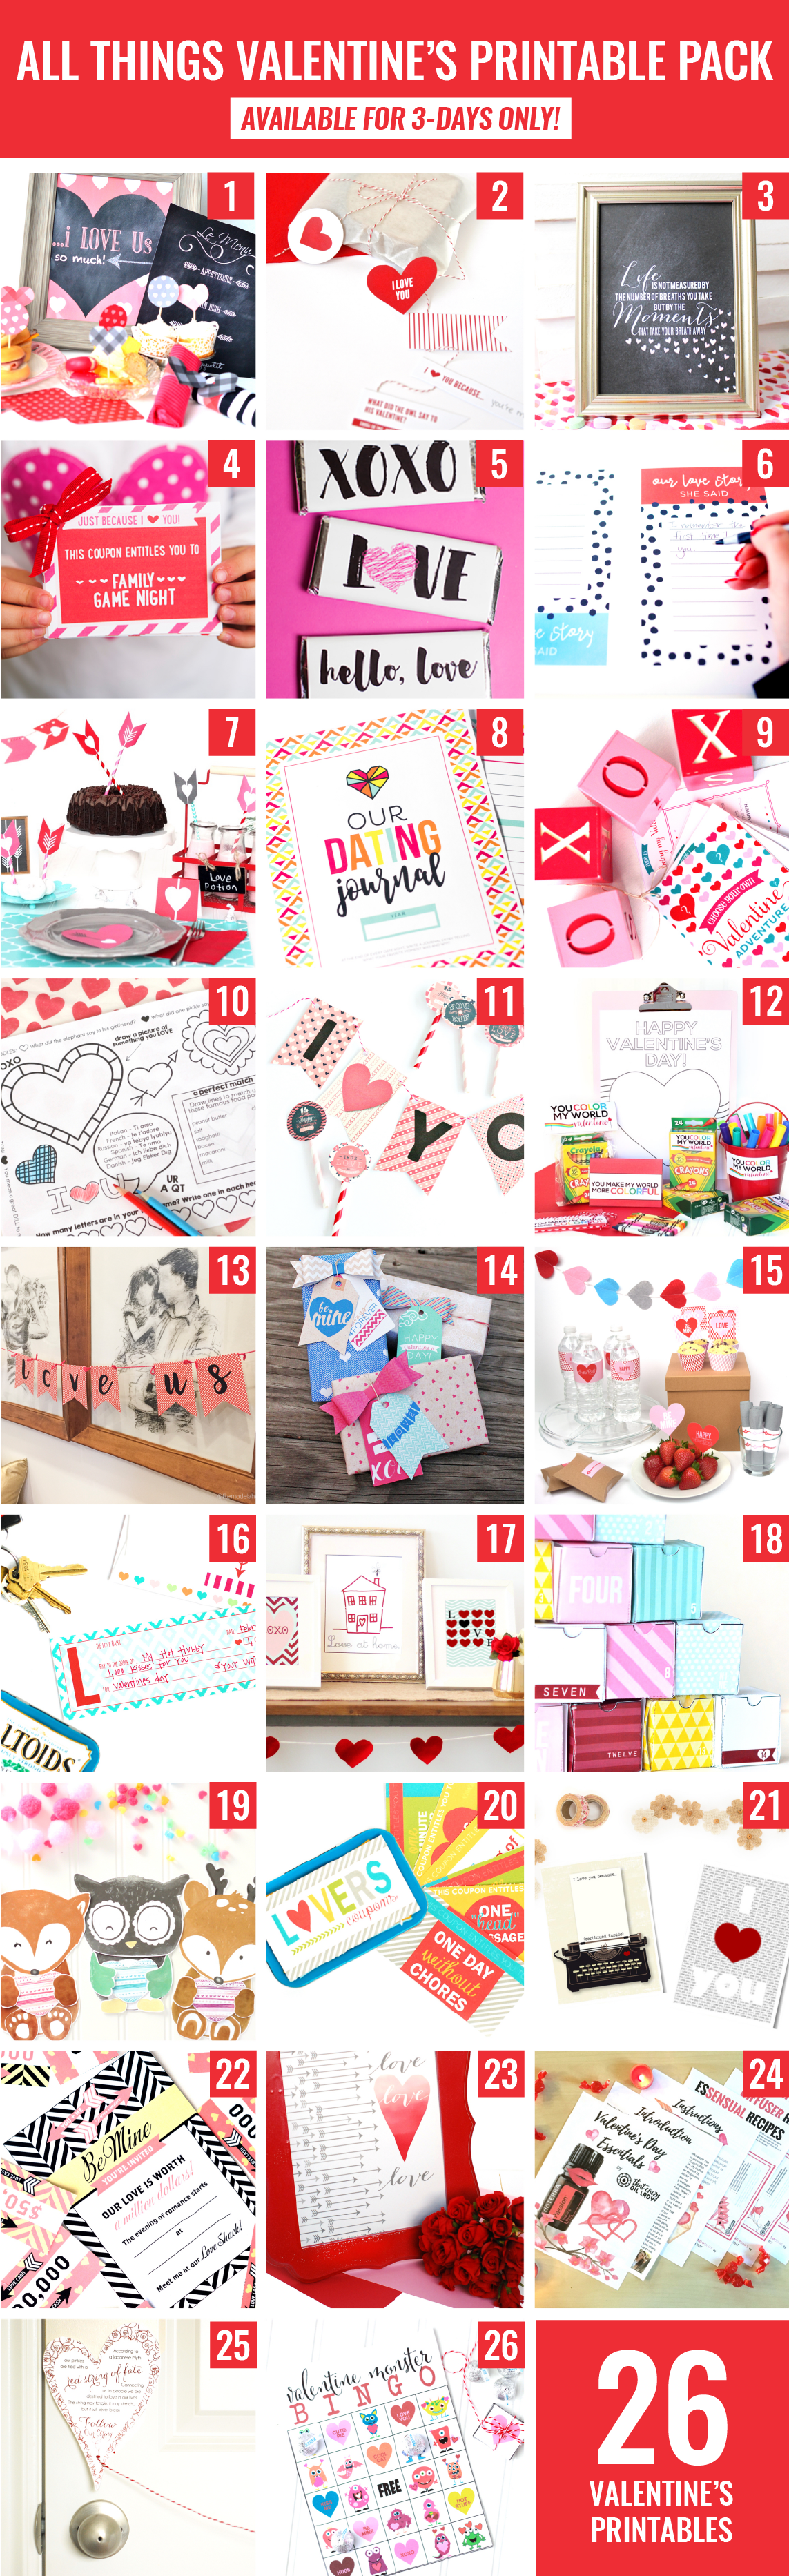 LIMITED TIME: Valentine's Printable Bundle - 200 Pages of Adorable Designs via @PagingSupermom